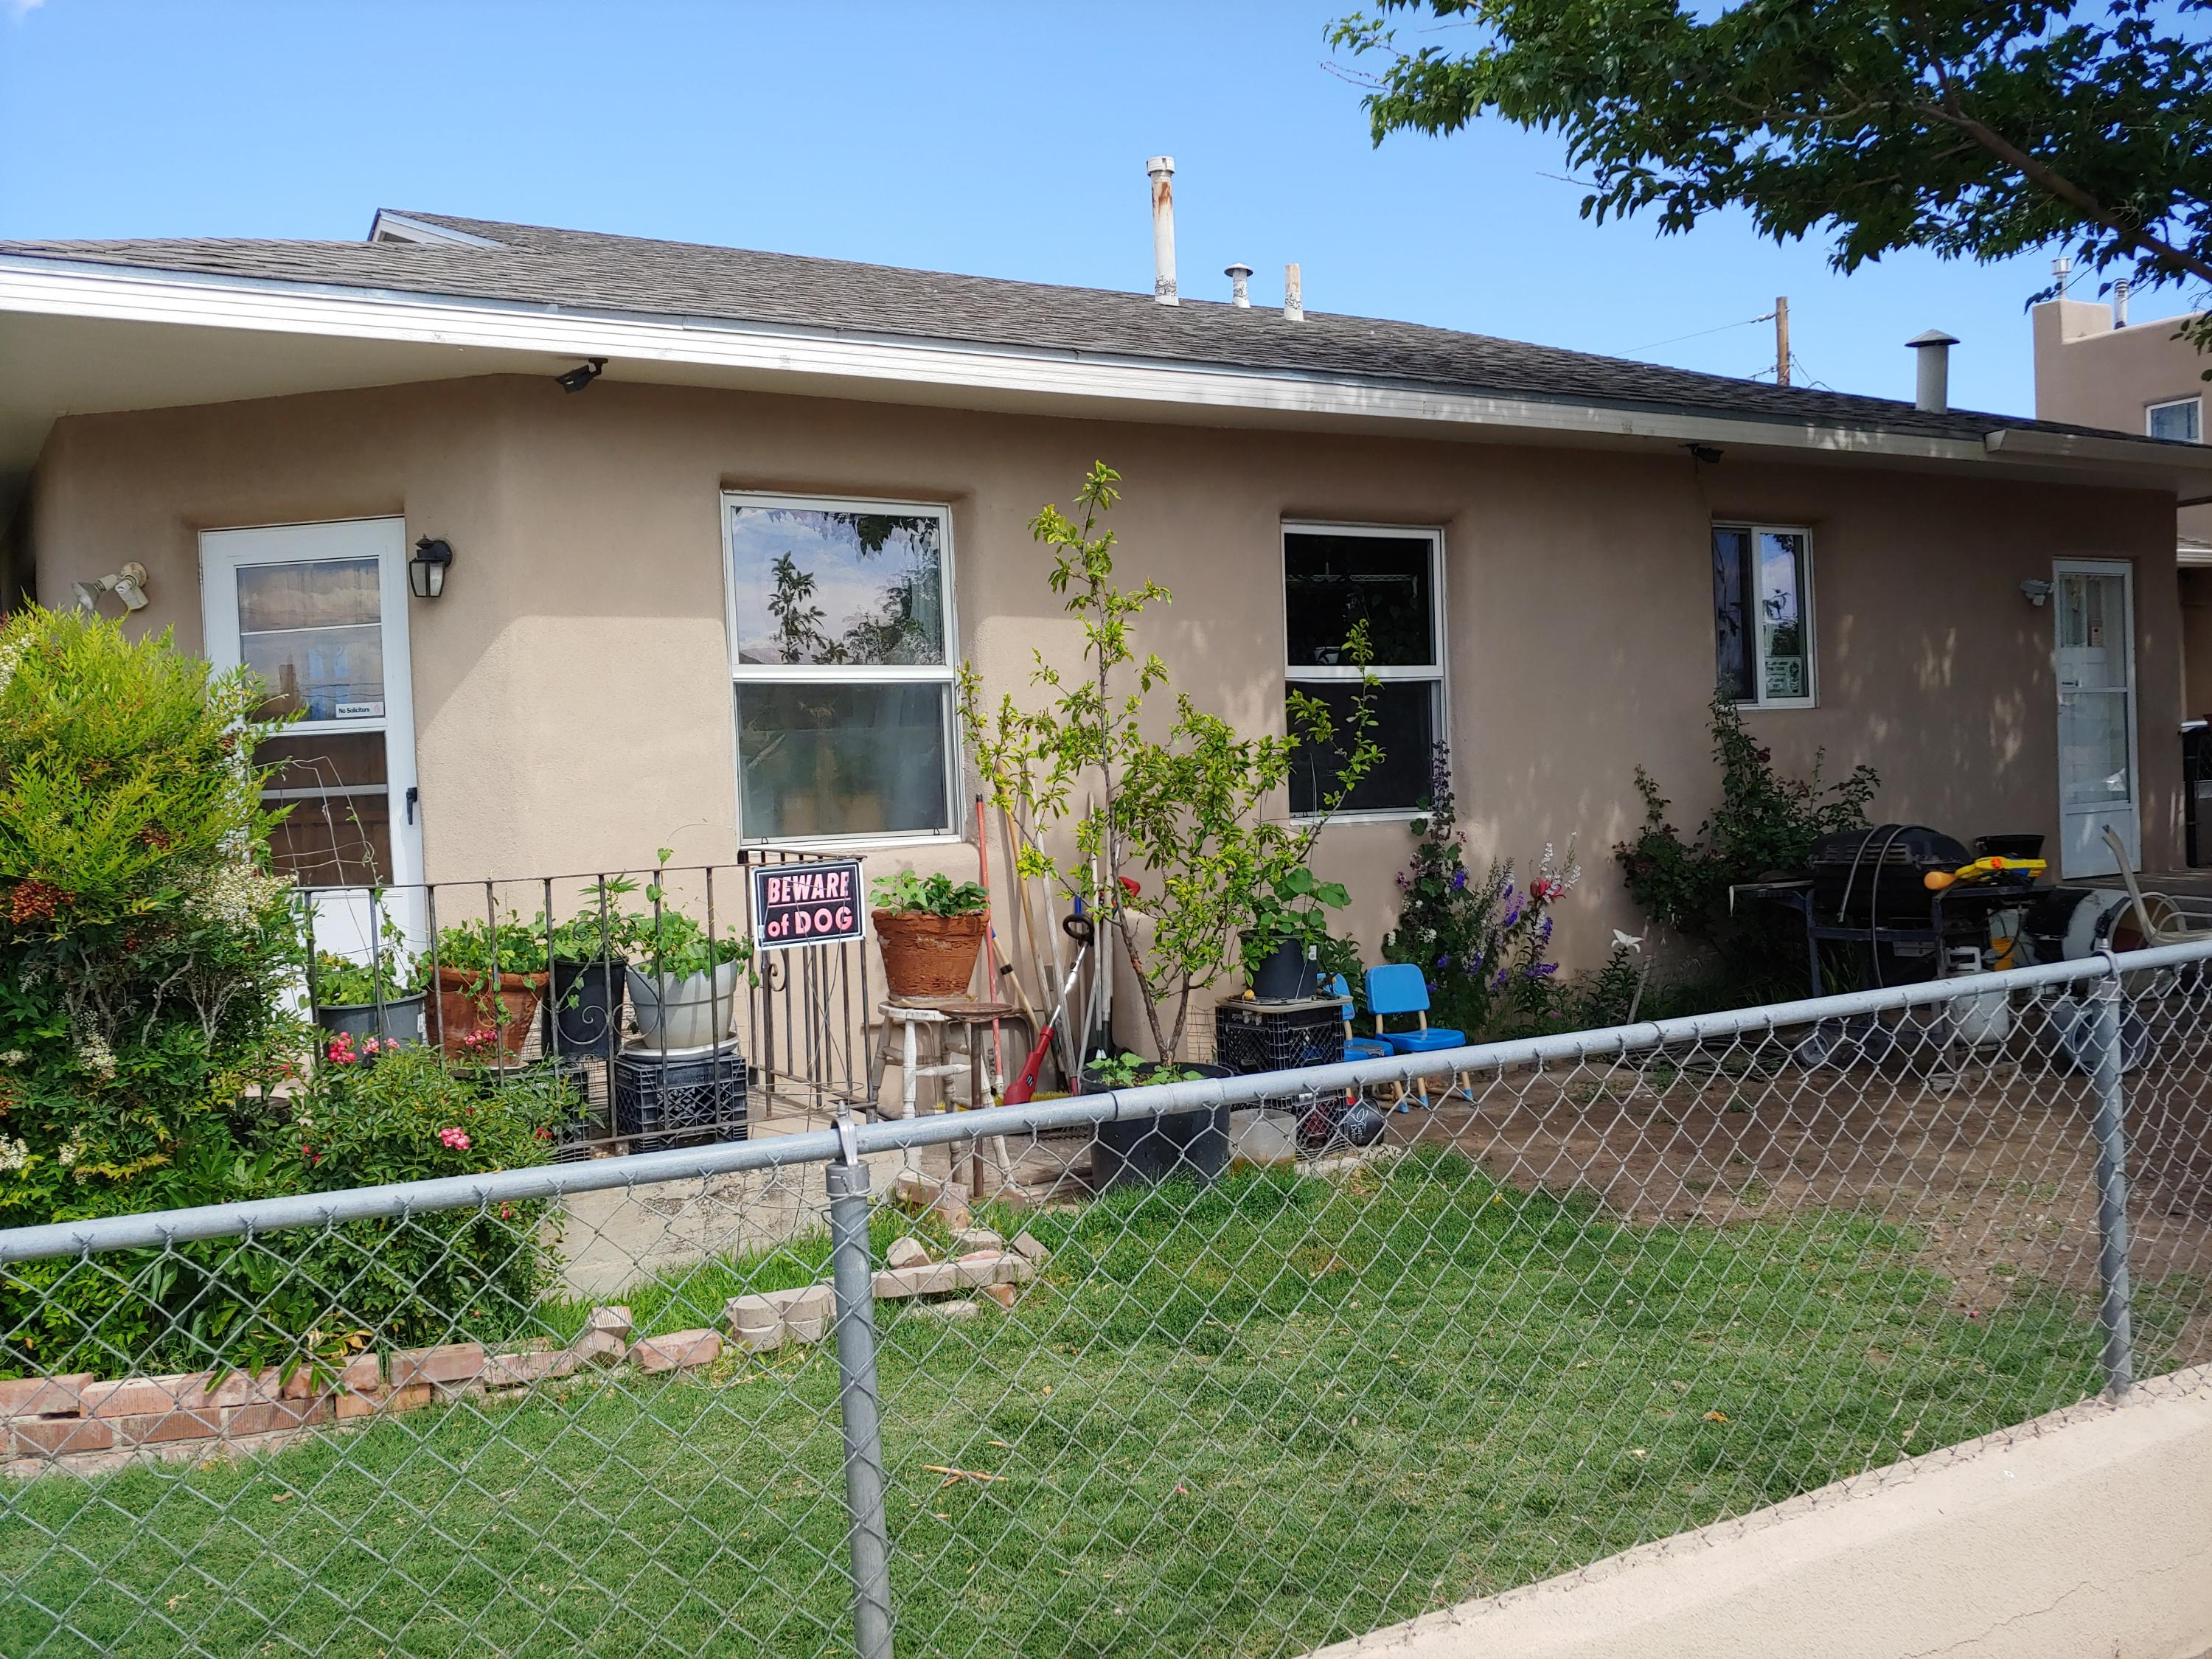 Great opportunity!!    Versatility to live in one unit and rent others out to reduce or eliminate monthly payment! Could work for college student, starting out, or family depending on your needs...has a 3 bedroom two bath main unit , a two story two bedroom one bath unit and one efficiency unit, all in one building. Monthly potential income from each is $1,400, $1,000, $550 for a total monthly of $2,950 gross income. Updates include main kitchen, 30 yr shingle roof, Vinyl windows, deck, stucco, small storage shed and offstreet parking. Super convenient location, freeway access, just minutes from the Duranes Community center...workout room gymnasium, free classes. Very well maintained property. Rezoned to  SU-2 to match use. Closed circuit camera security. Appliances included.